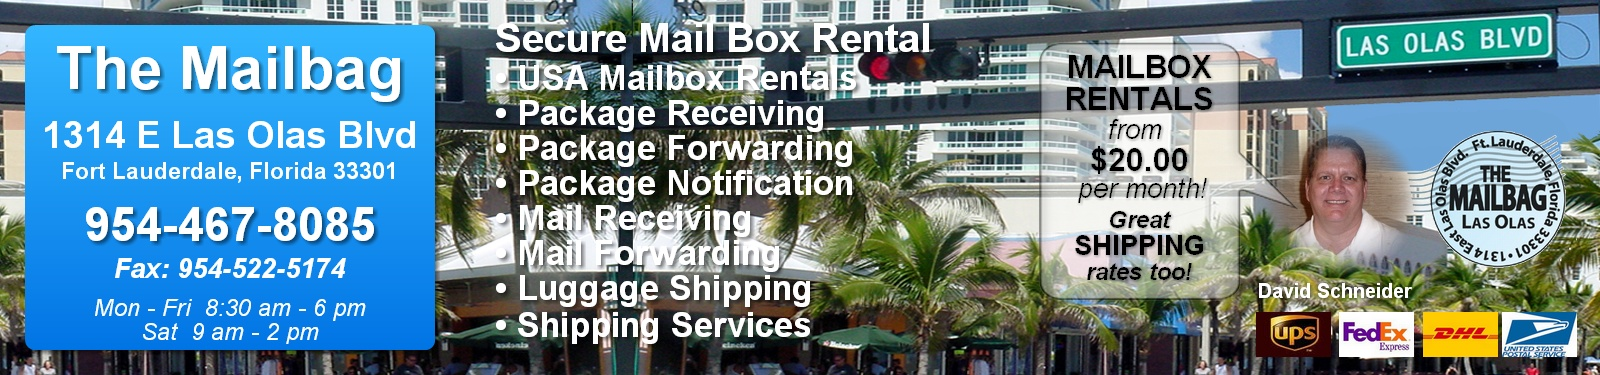 The Mailbag, Fort Lauderdale, FL 33301 USA